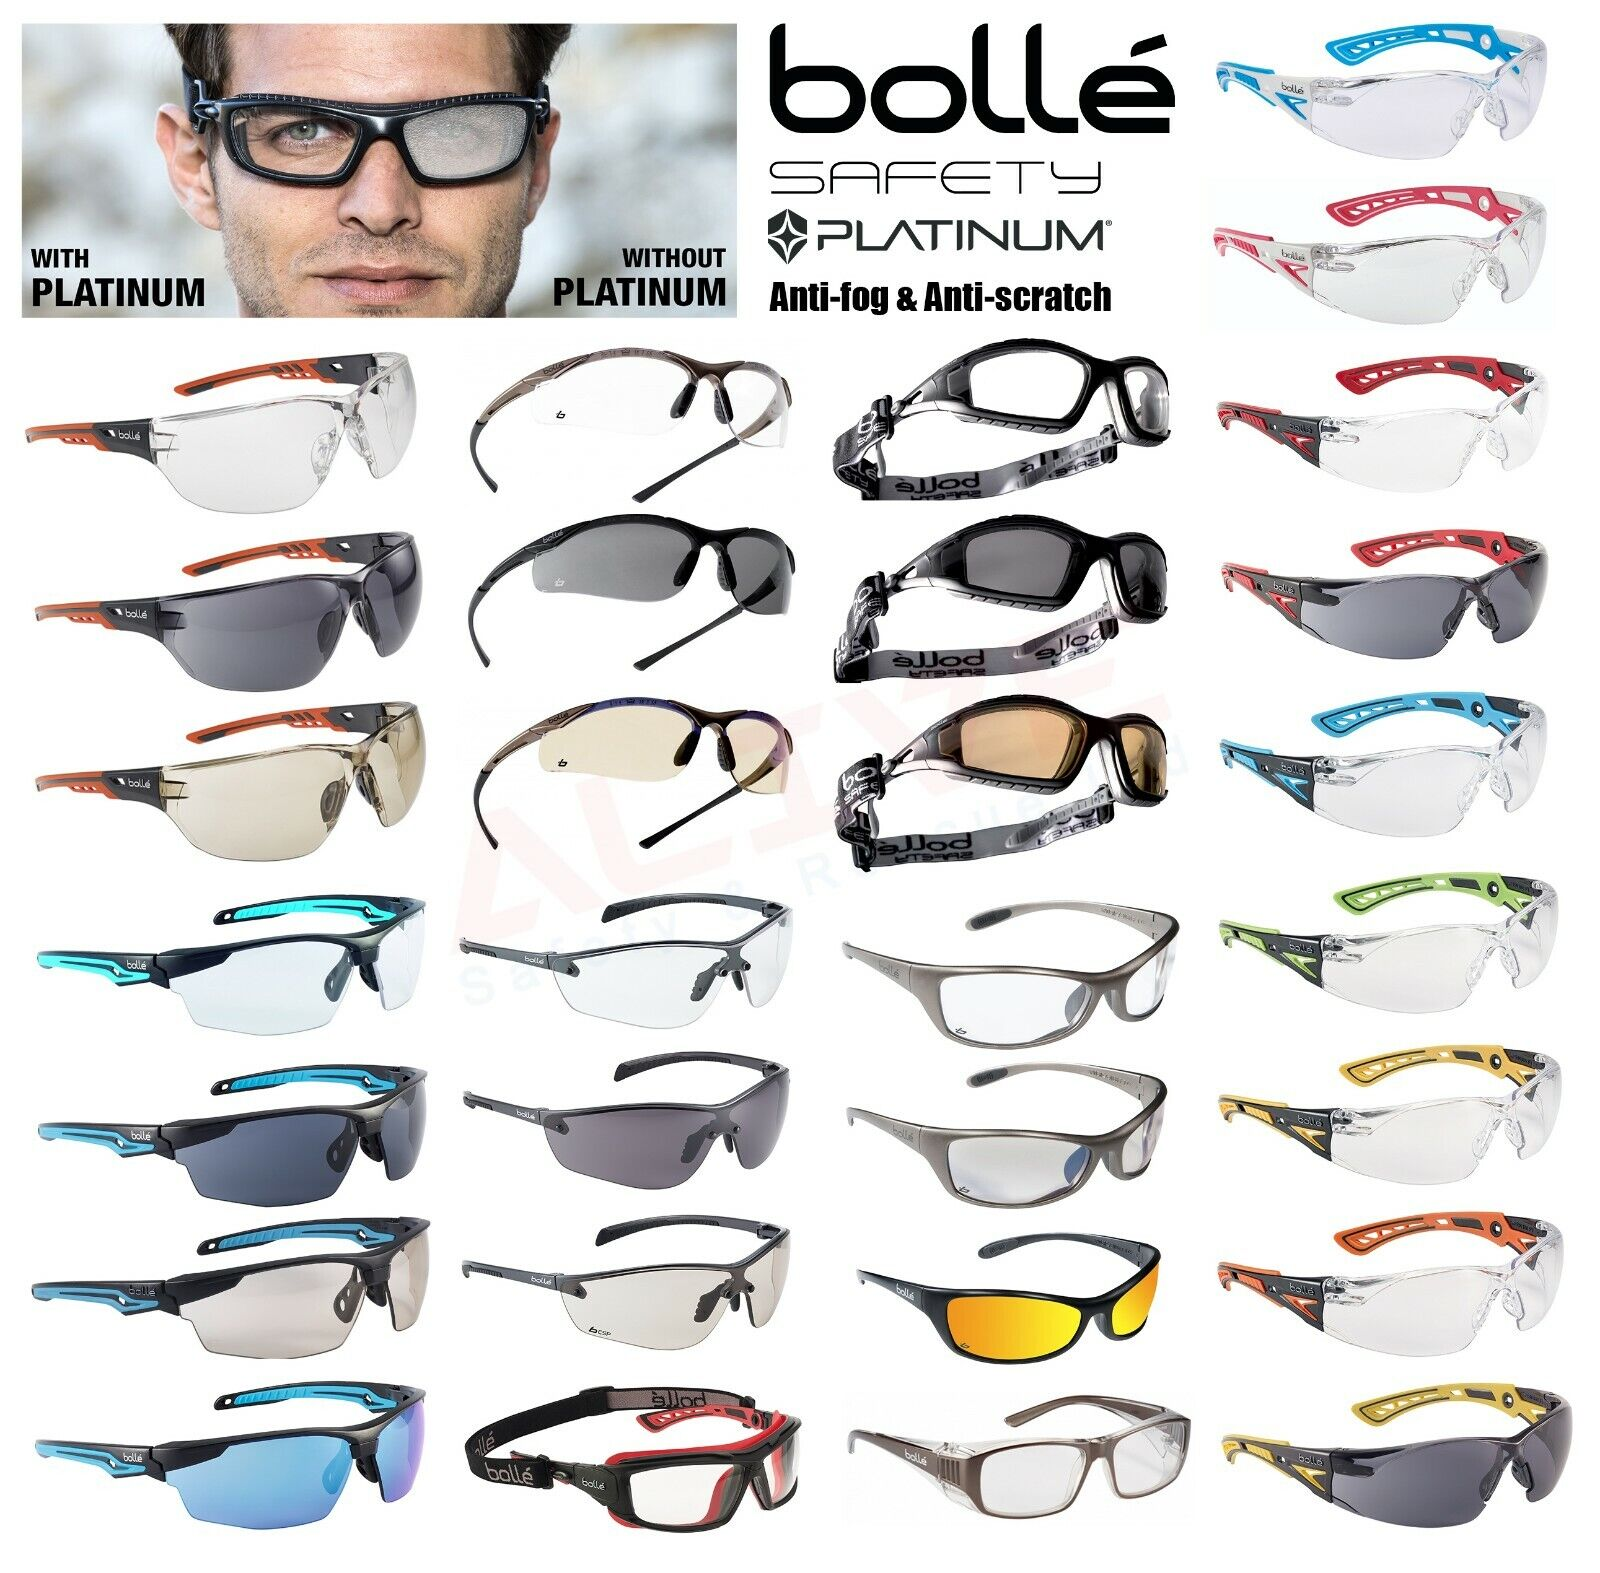 Bolle Ness Range Sports Cycling Safety Glasses Spectacles Eye Protection